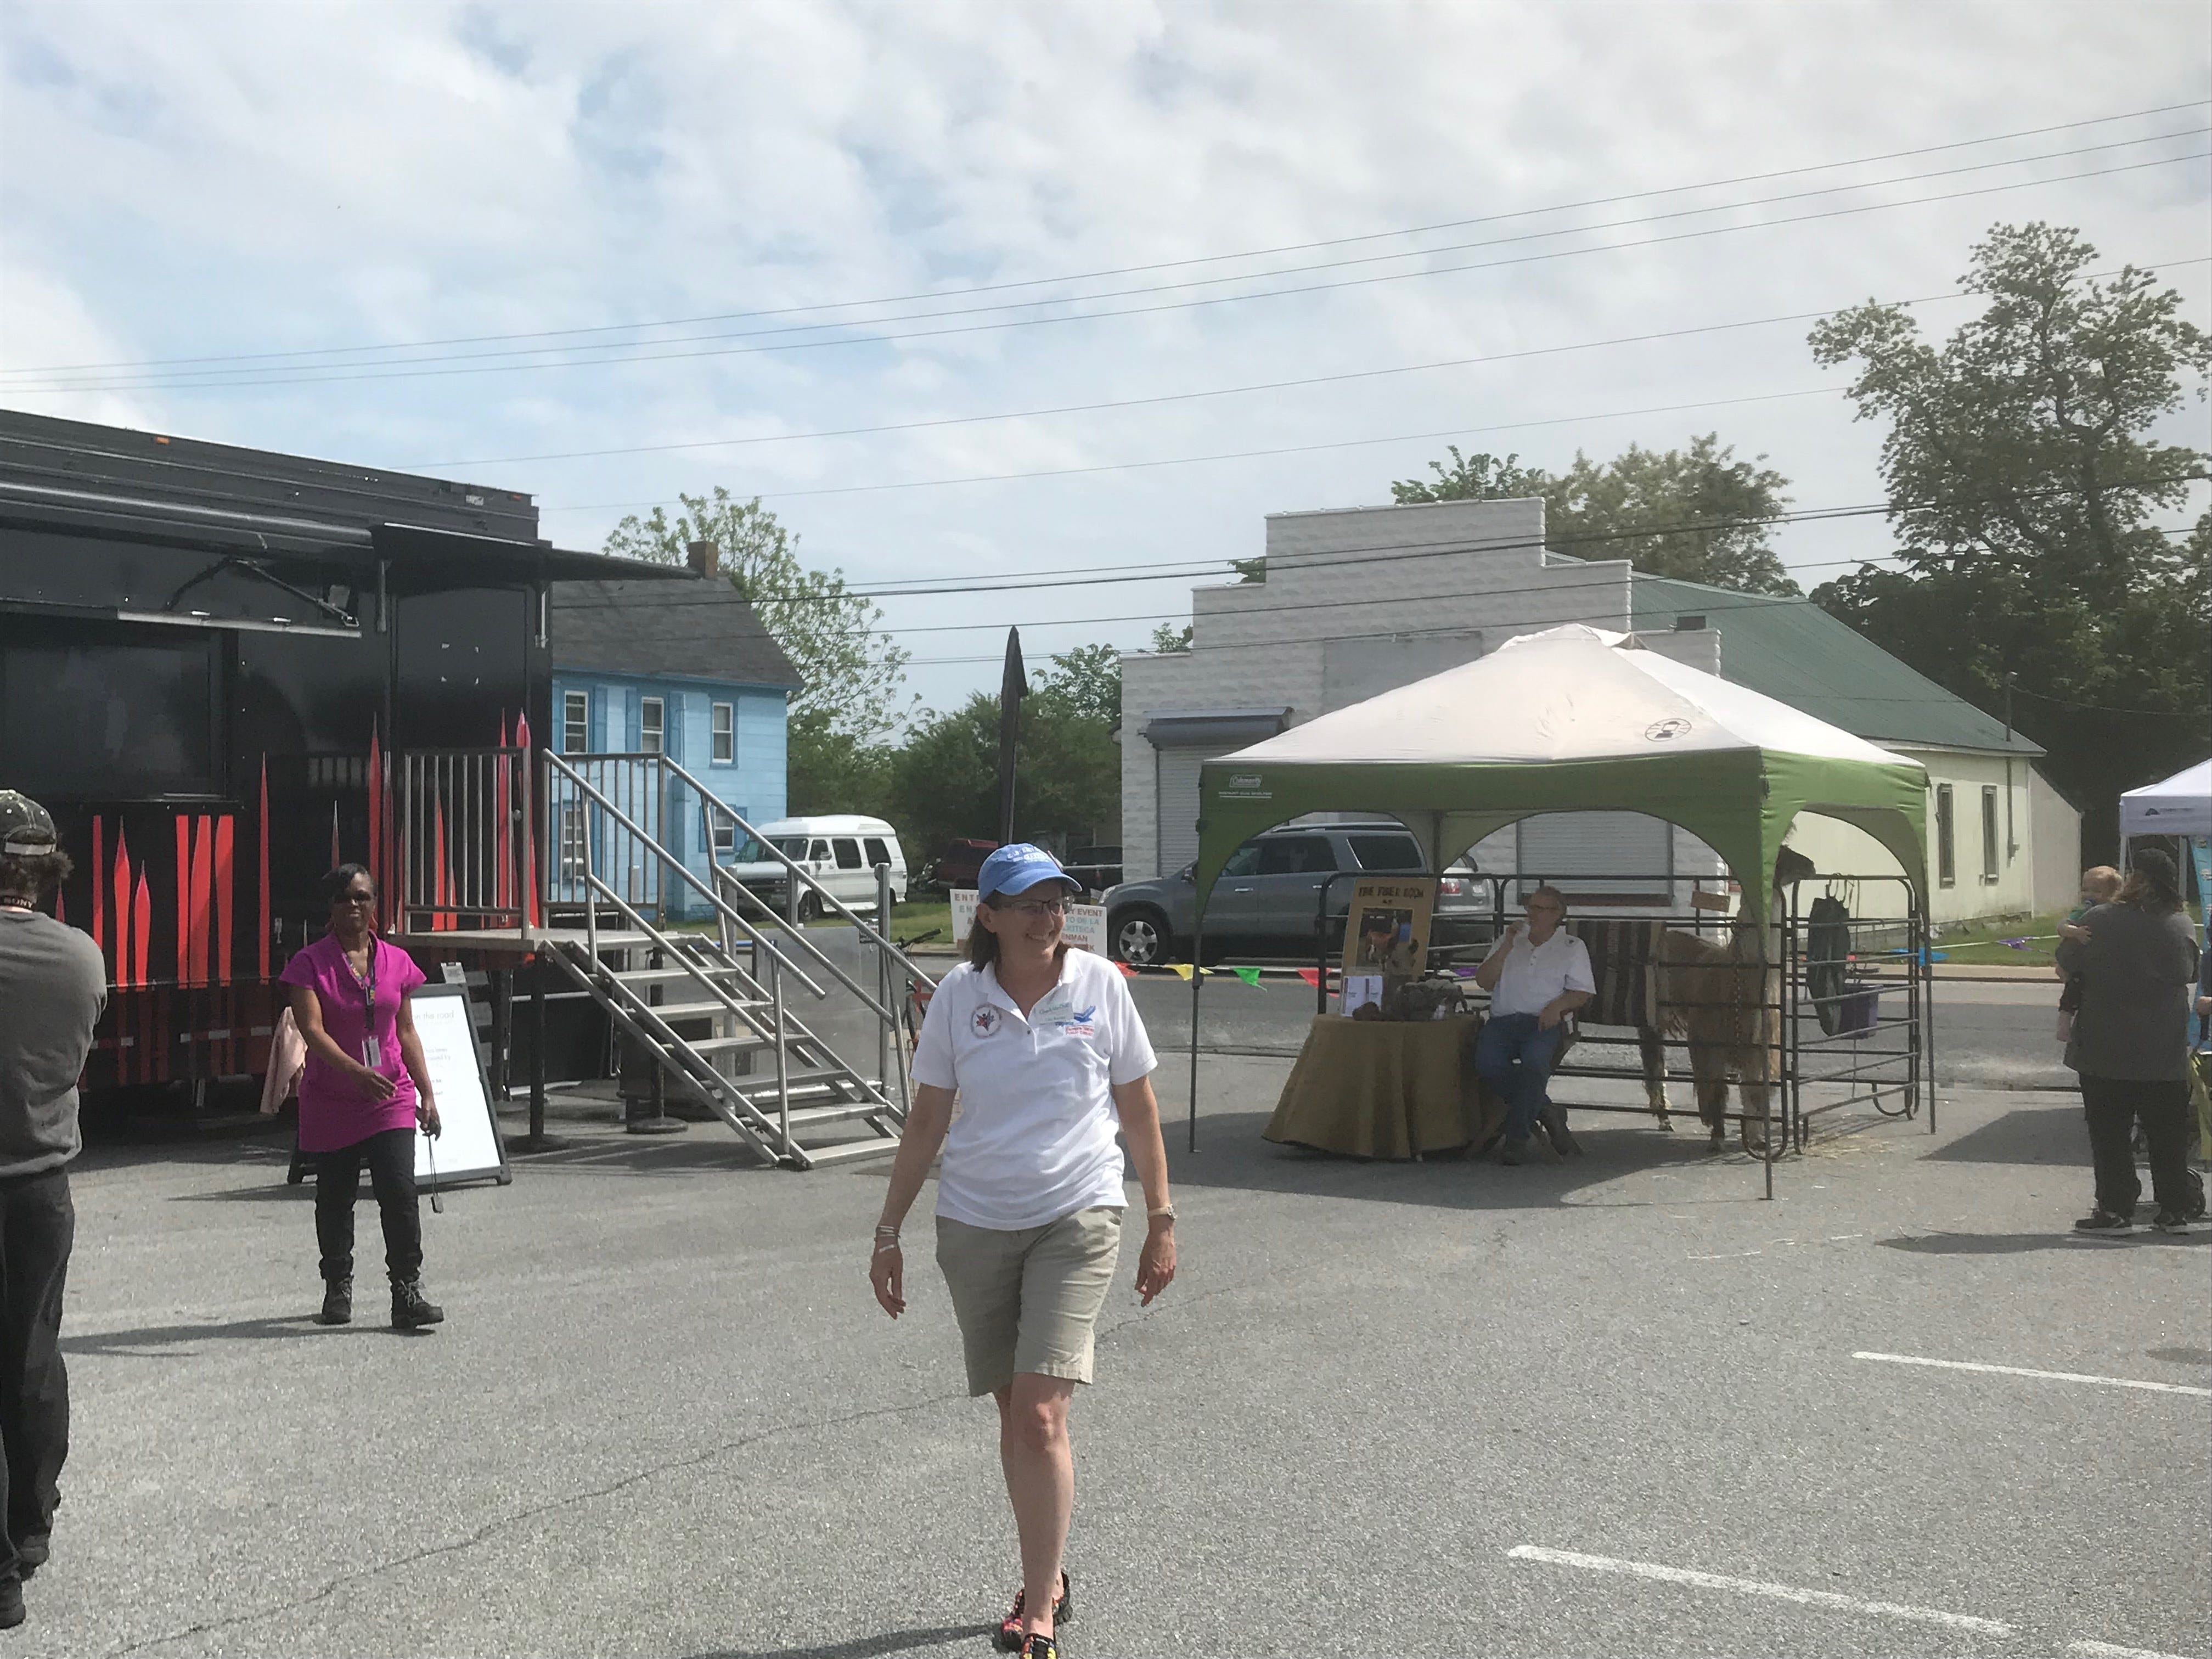 """Cara Burton, Eastern Shore Public Library director, walks near the Virginia Museum of Fine Arts' artmobile during  a multicultural festival, 'Celebrate Us,"""" at the site of the future regional library in Parksley, Virginia on Sunday, May 5, 2019."""